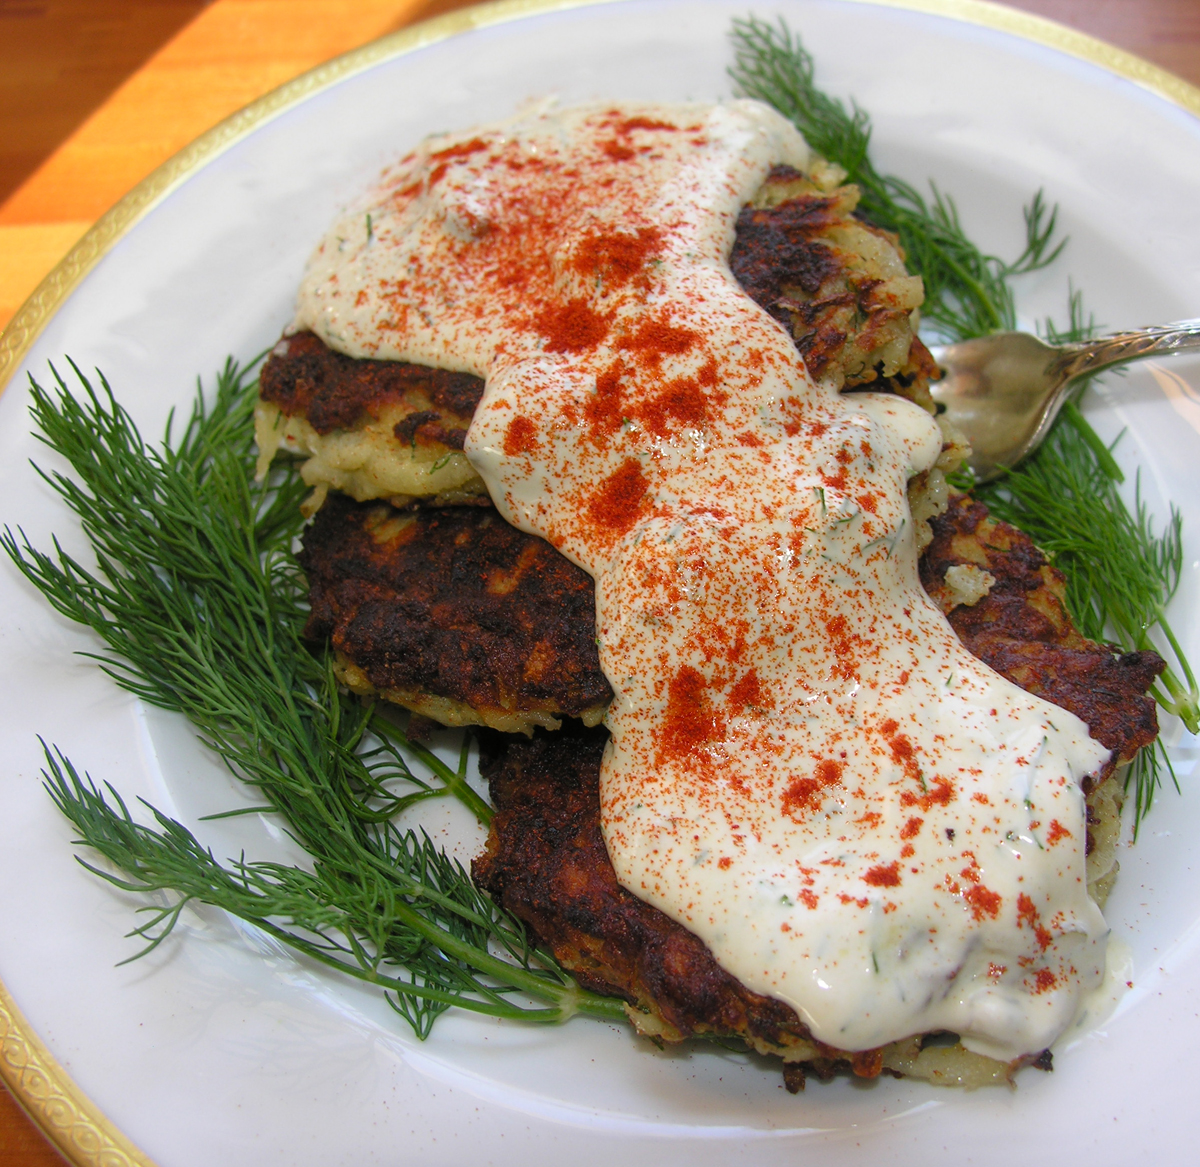 Latkes with salmon and dill rmoulade